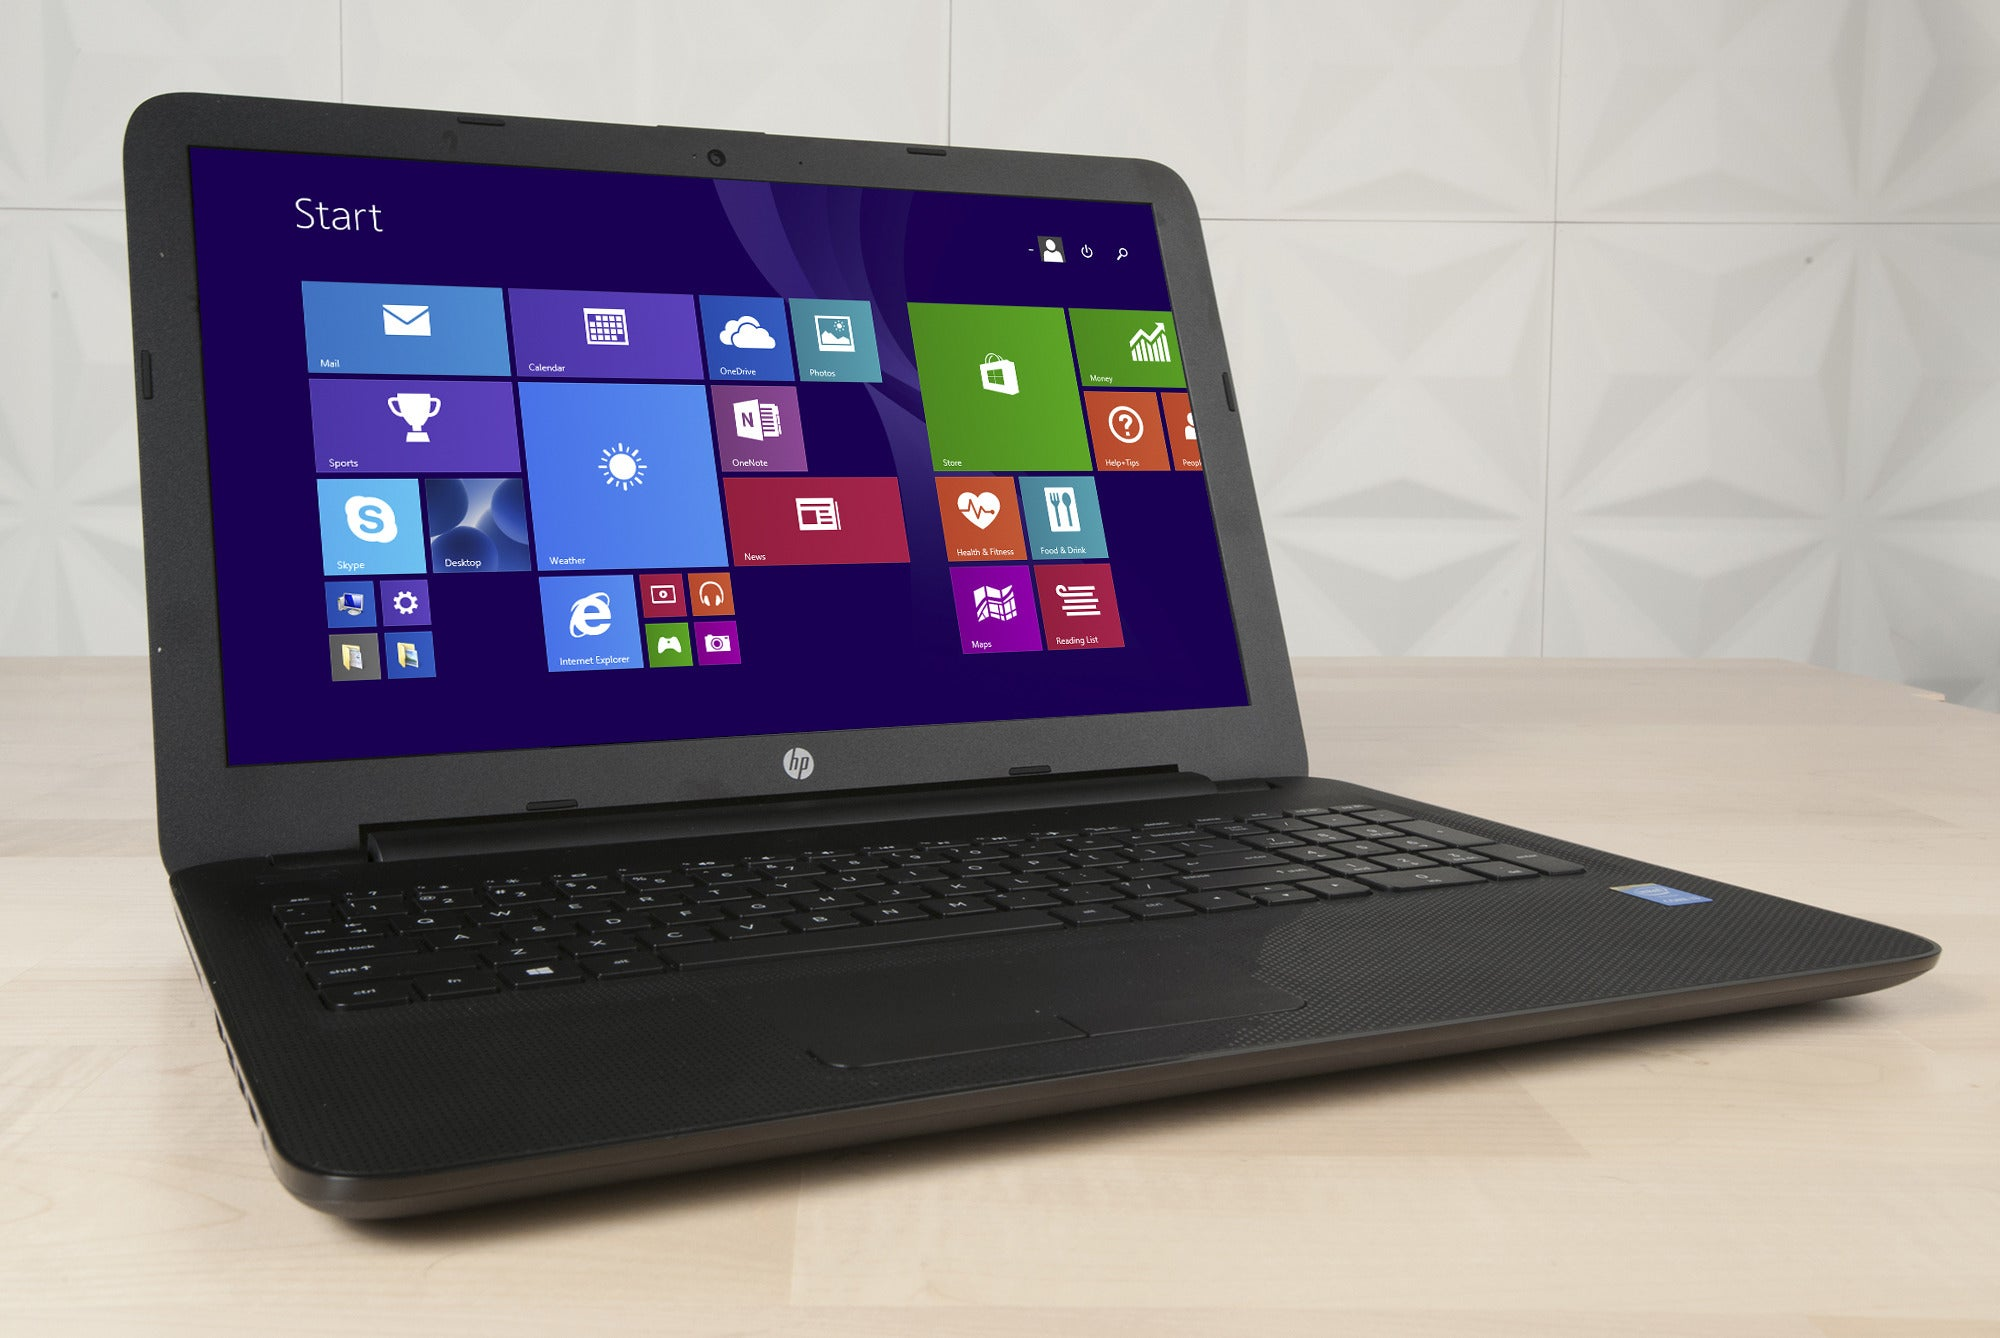 Hp notebook images - Hp 15t Touch Review Great Looks Good Performance This Budget Laptop S Got It All Pcworld